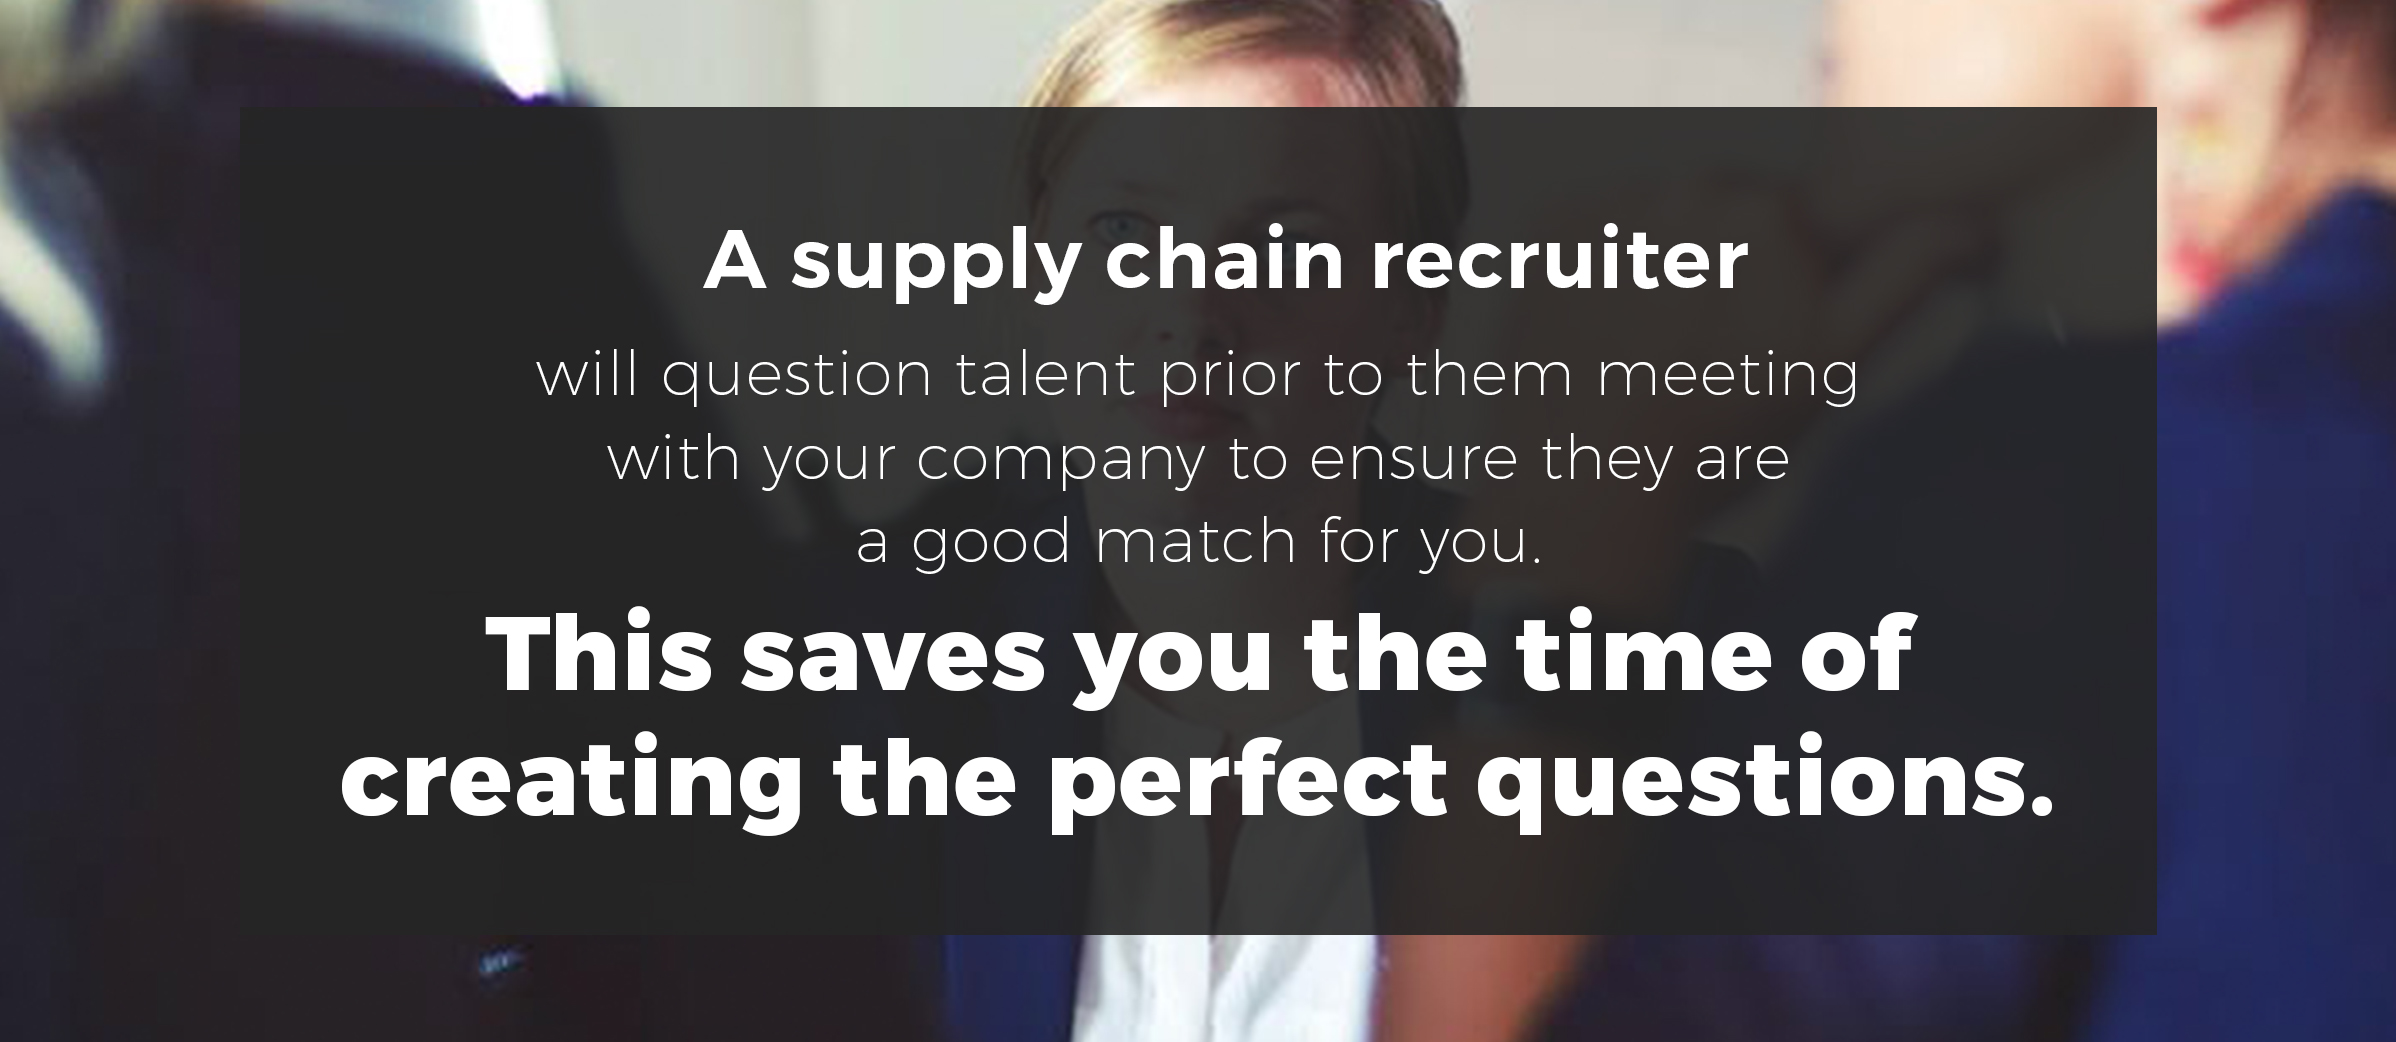 a supply chain recruiter saves you time